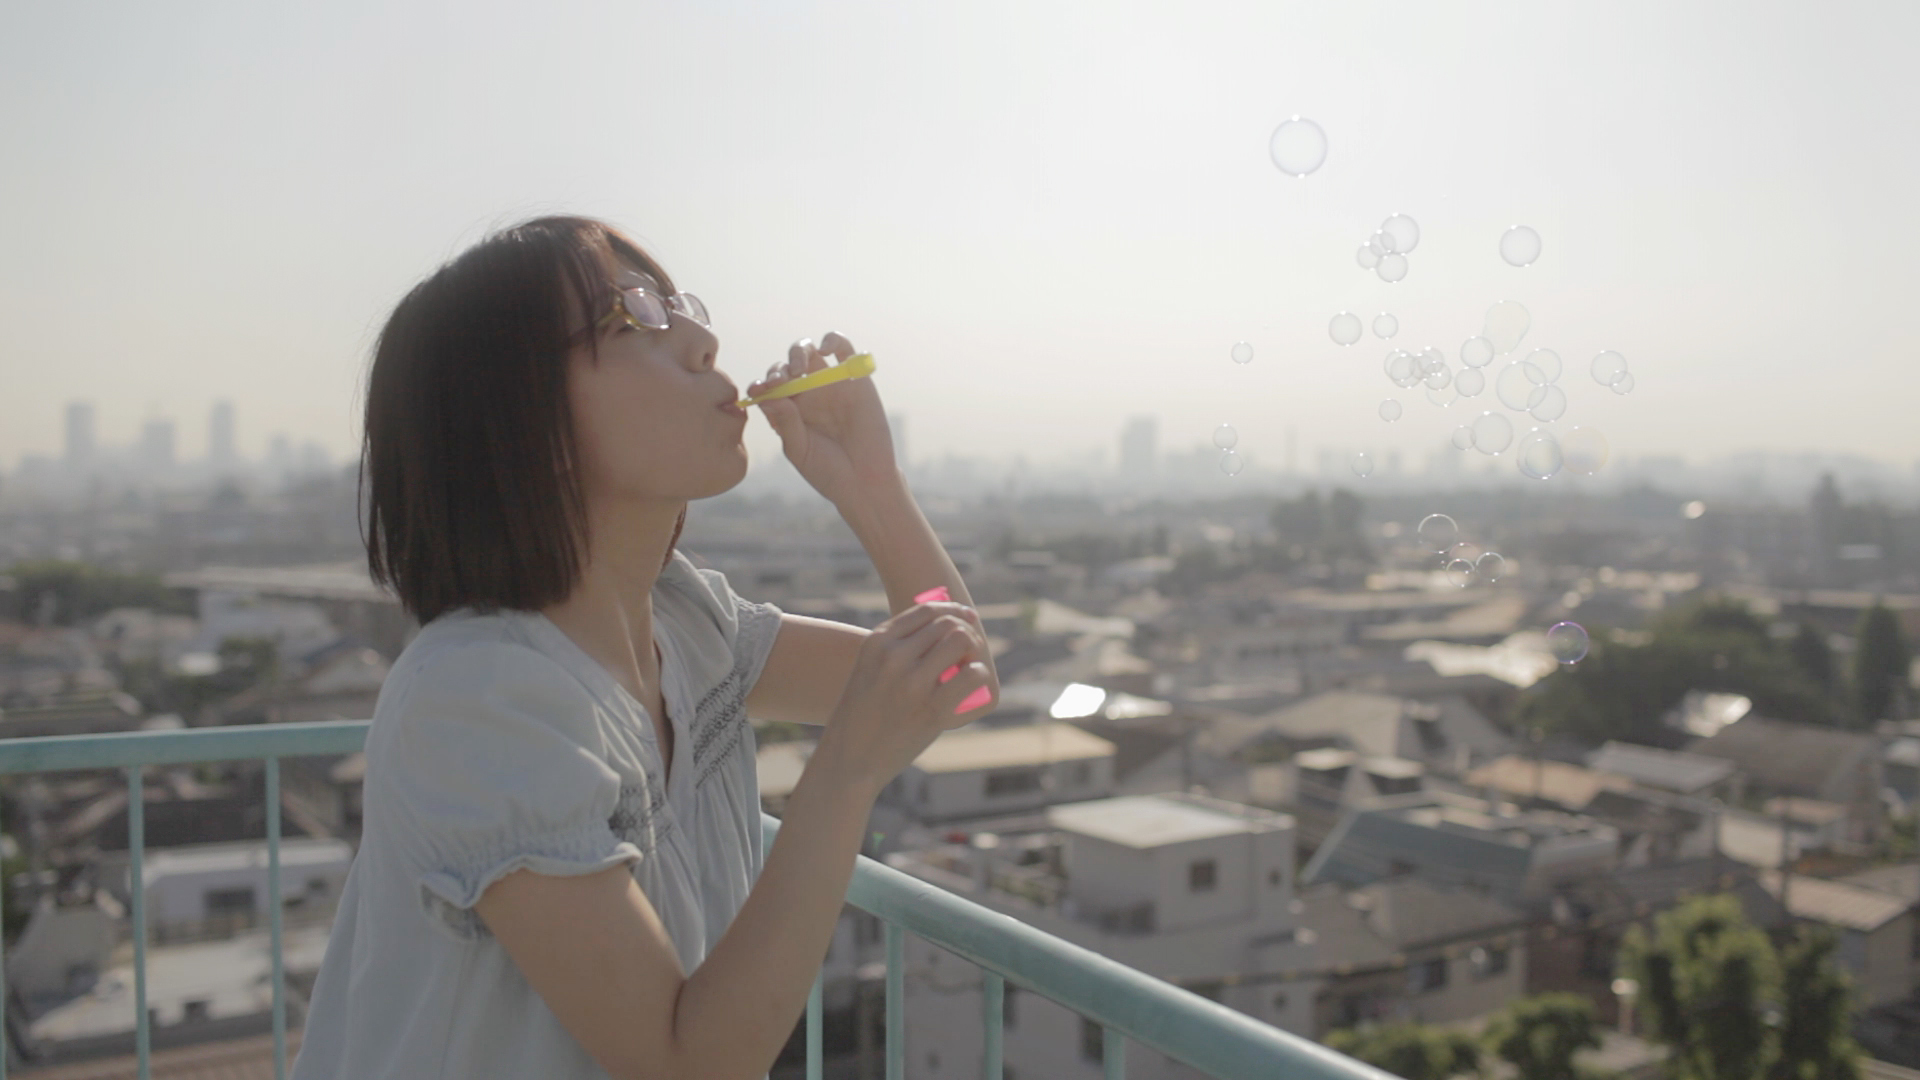 【MV】Bubble(2012/6min)